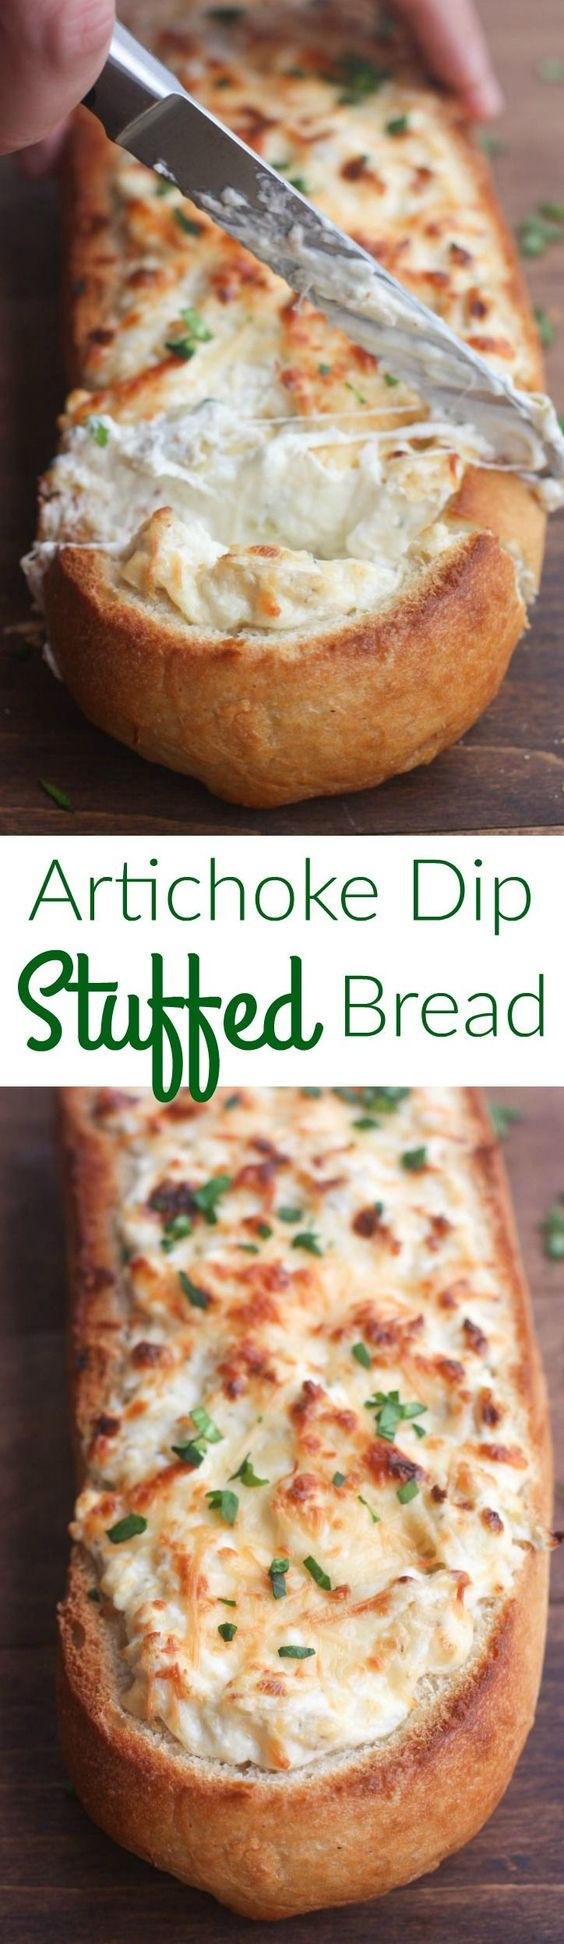 Artichoke Dip Stuffed Bread Appetizer Recipe | Tastes Better From Scratch = The Best Easy Party Appetizers, Delicious Dips and Finger Foods Recipes - Quick family friendly snacks for Holidays, Tailgating and Super Bowl Parties #horsdoeuvres #appetizers #fingerfoods #tapas #partyfood #christmaspartyfood #newyearsevepartyfood #newyearseve #tailgating #superbowl #easyappetizers